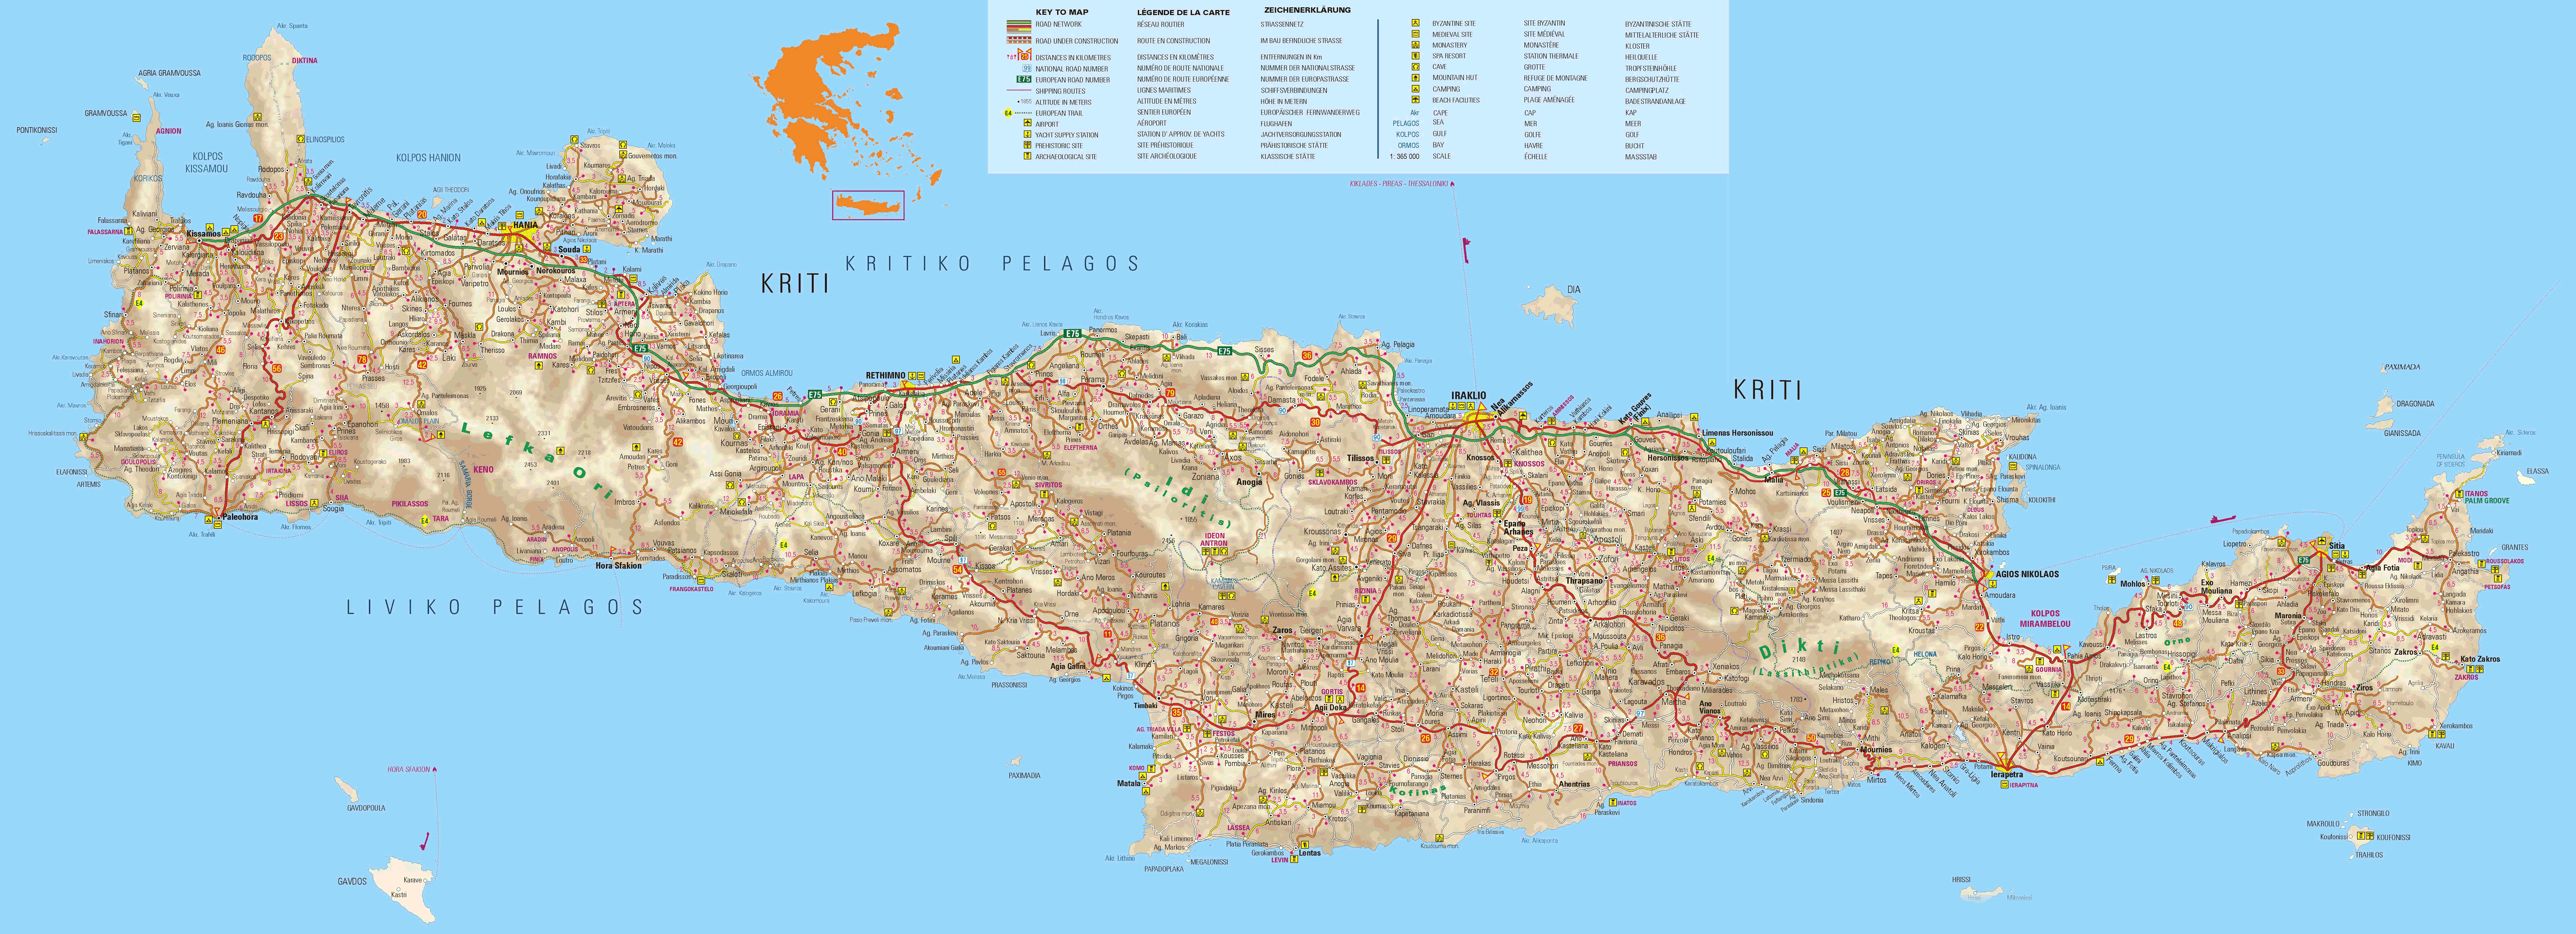 detailed map of the island of Crete